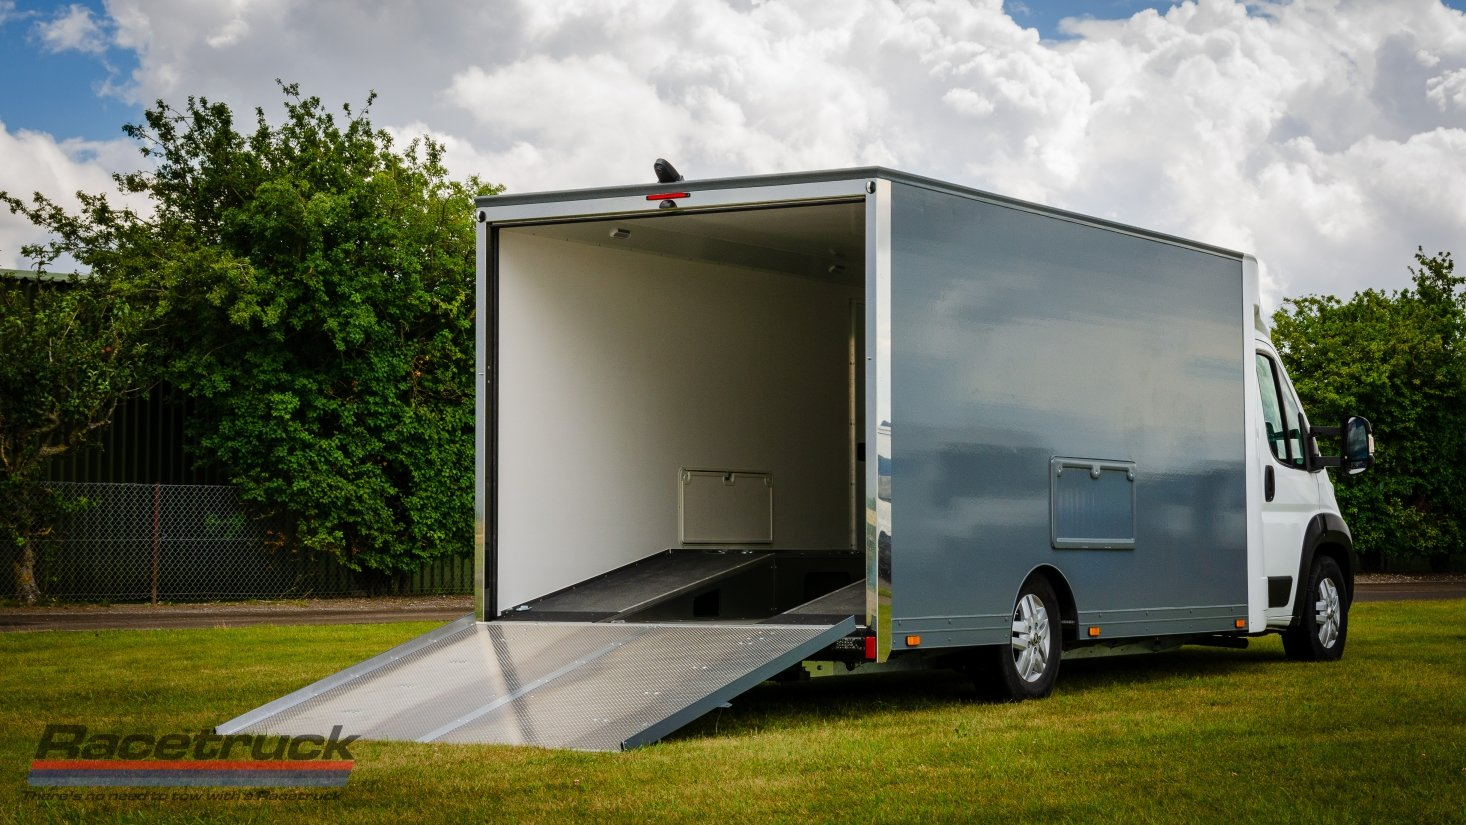 2021 Enclosed Car Transporter For Sale (picture 7 of 10)